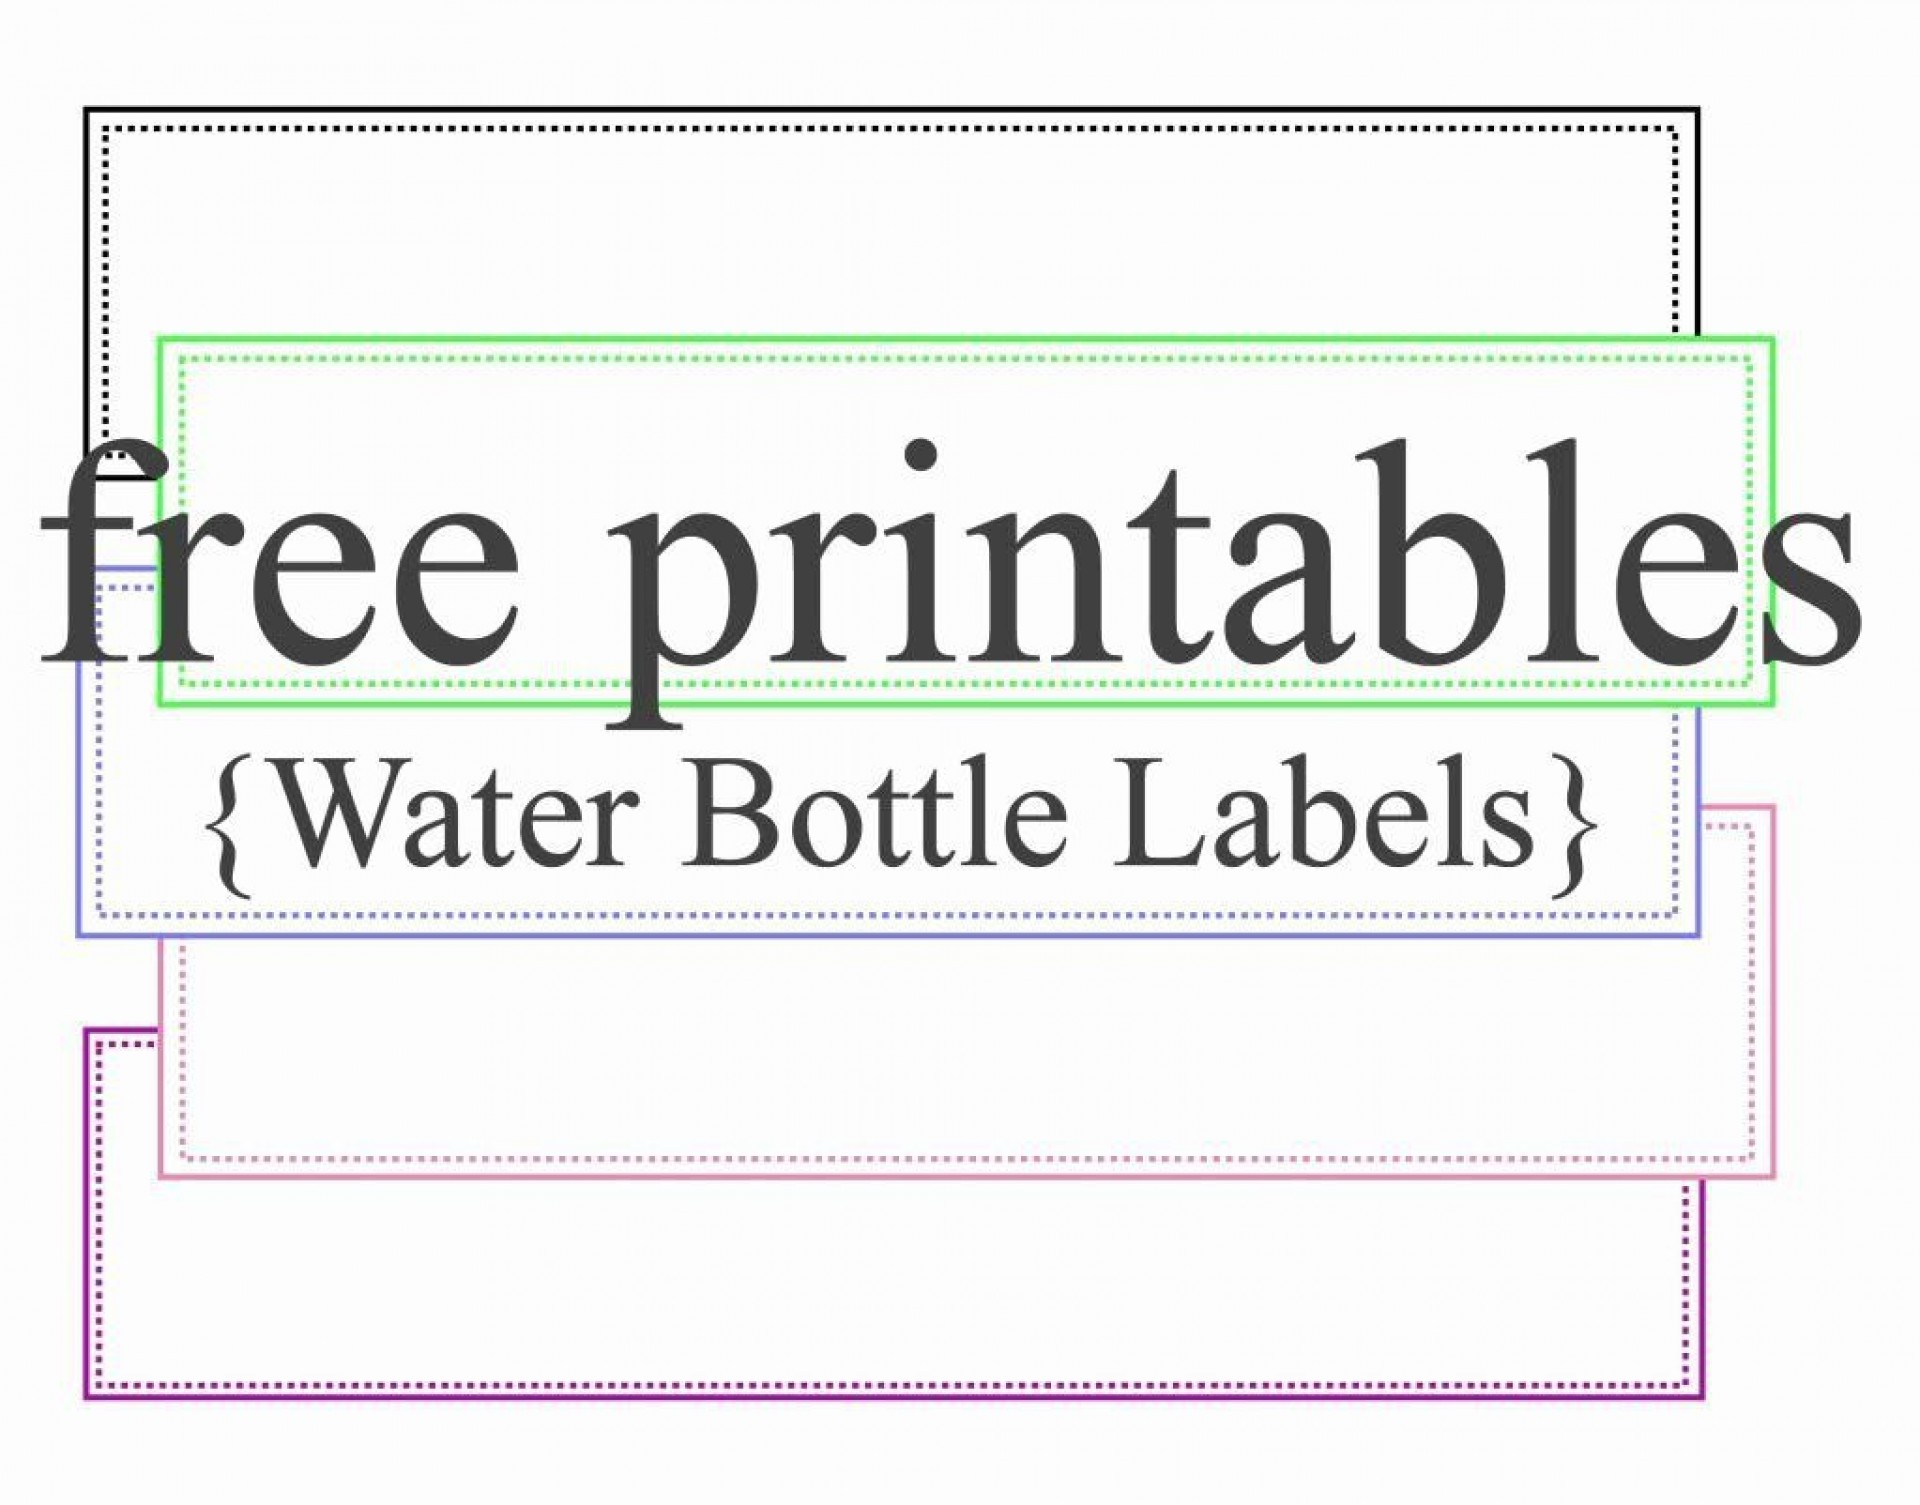 003 Surprising Bottle Label Template Free Highest Clarity  Mini Wine Water Birthday Champagne Download1920